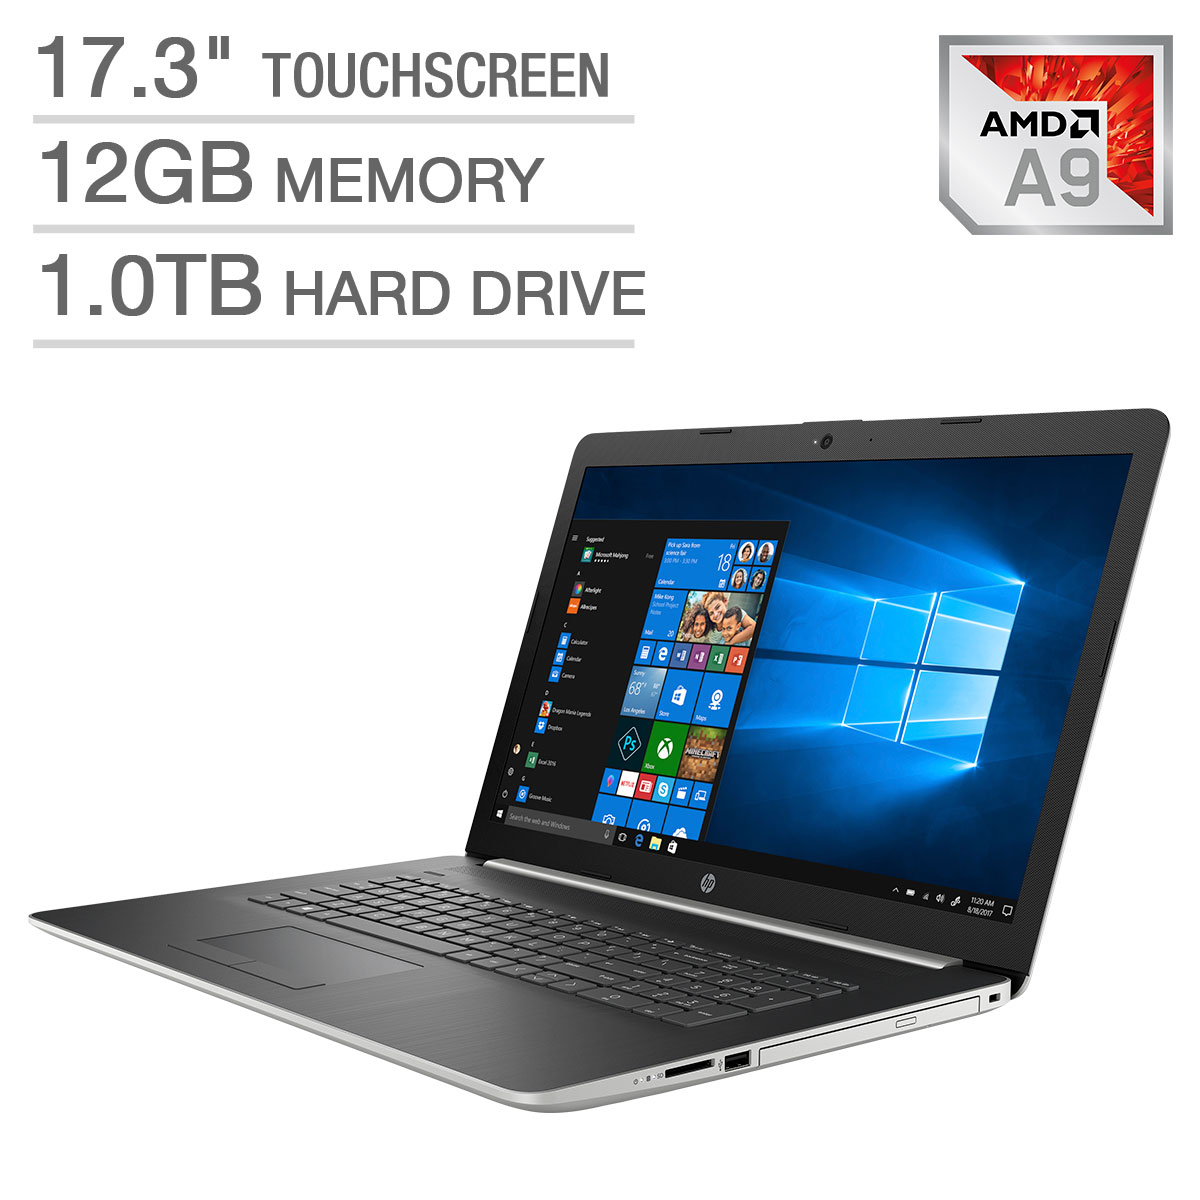 "HP 17.3"" Touchscreen Laptop - AMD A9"